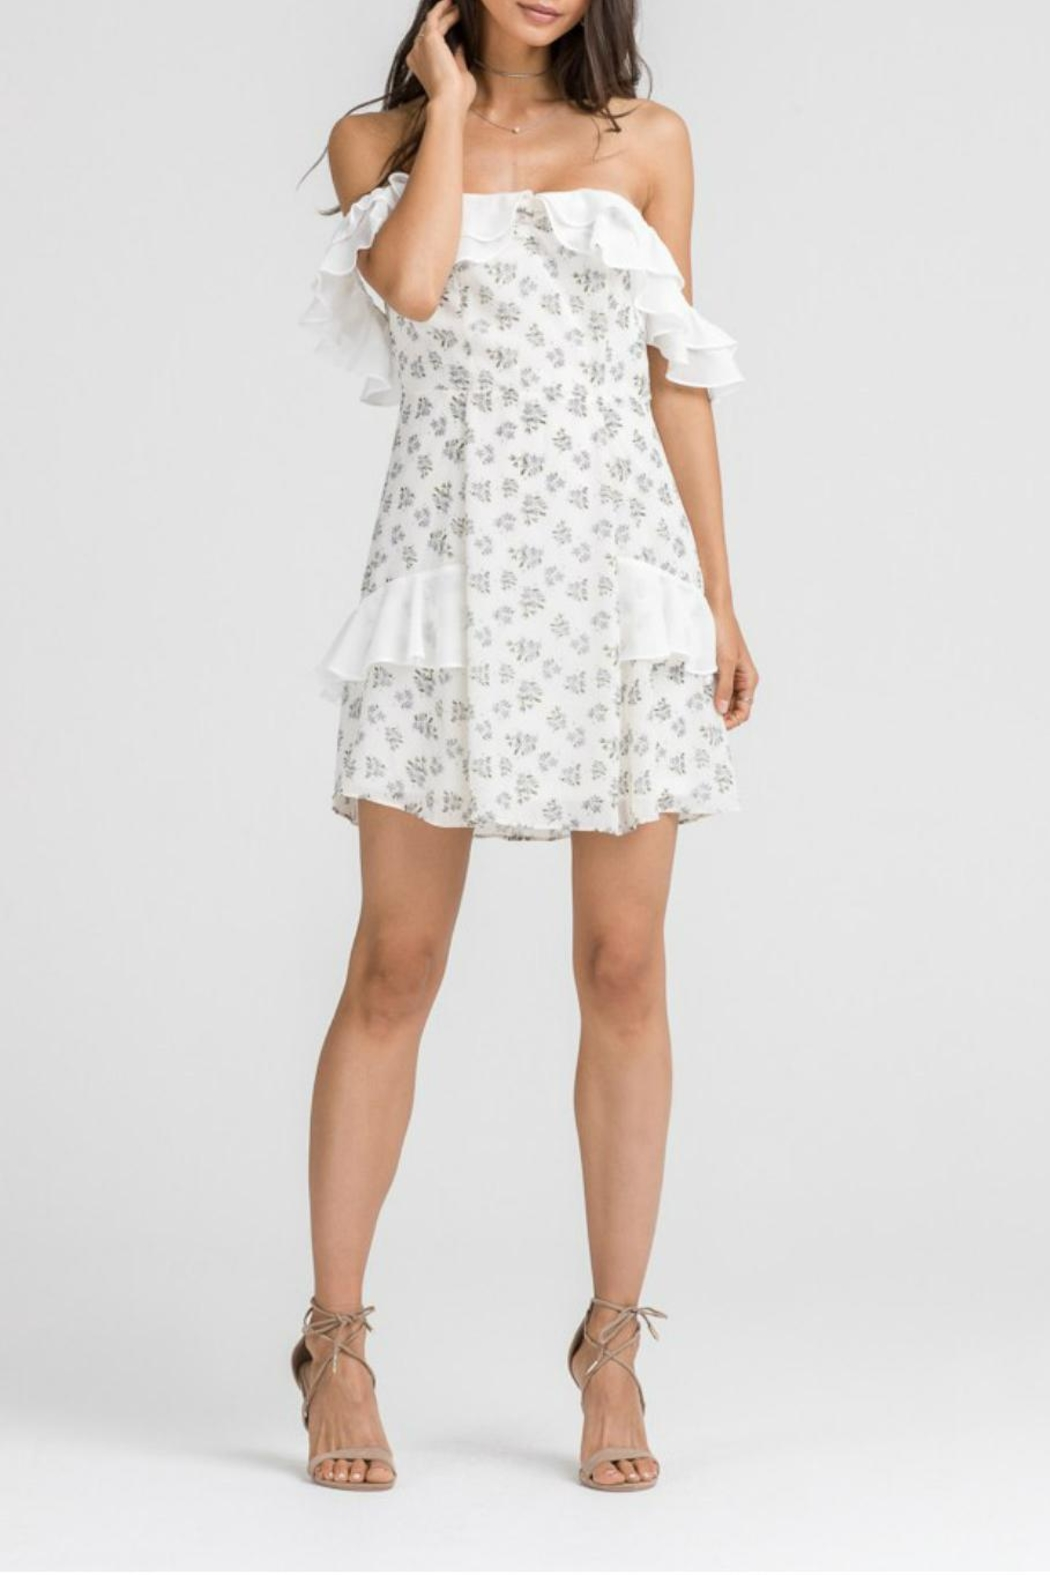 65c277c4aaa Lush Clothing Floral Ruffle Dress from Statesboro by Sole — Shoptiques